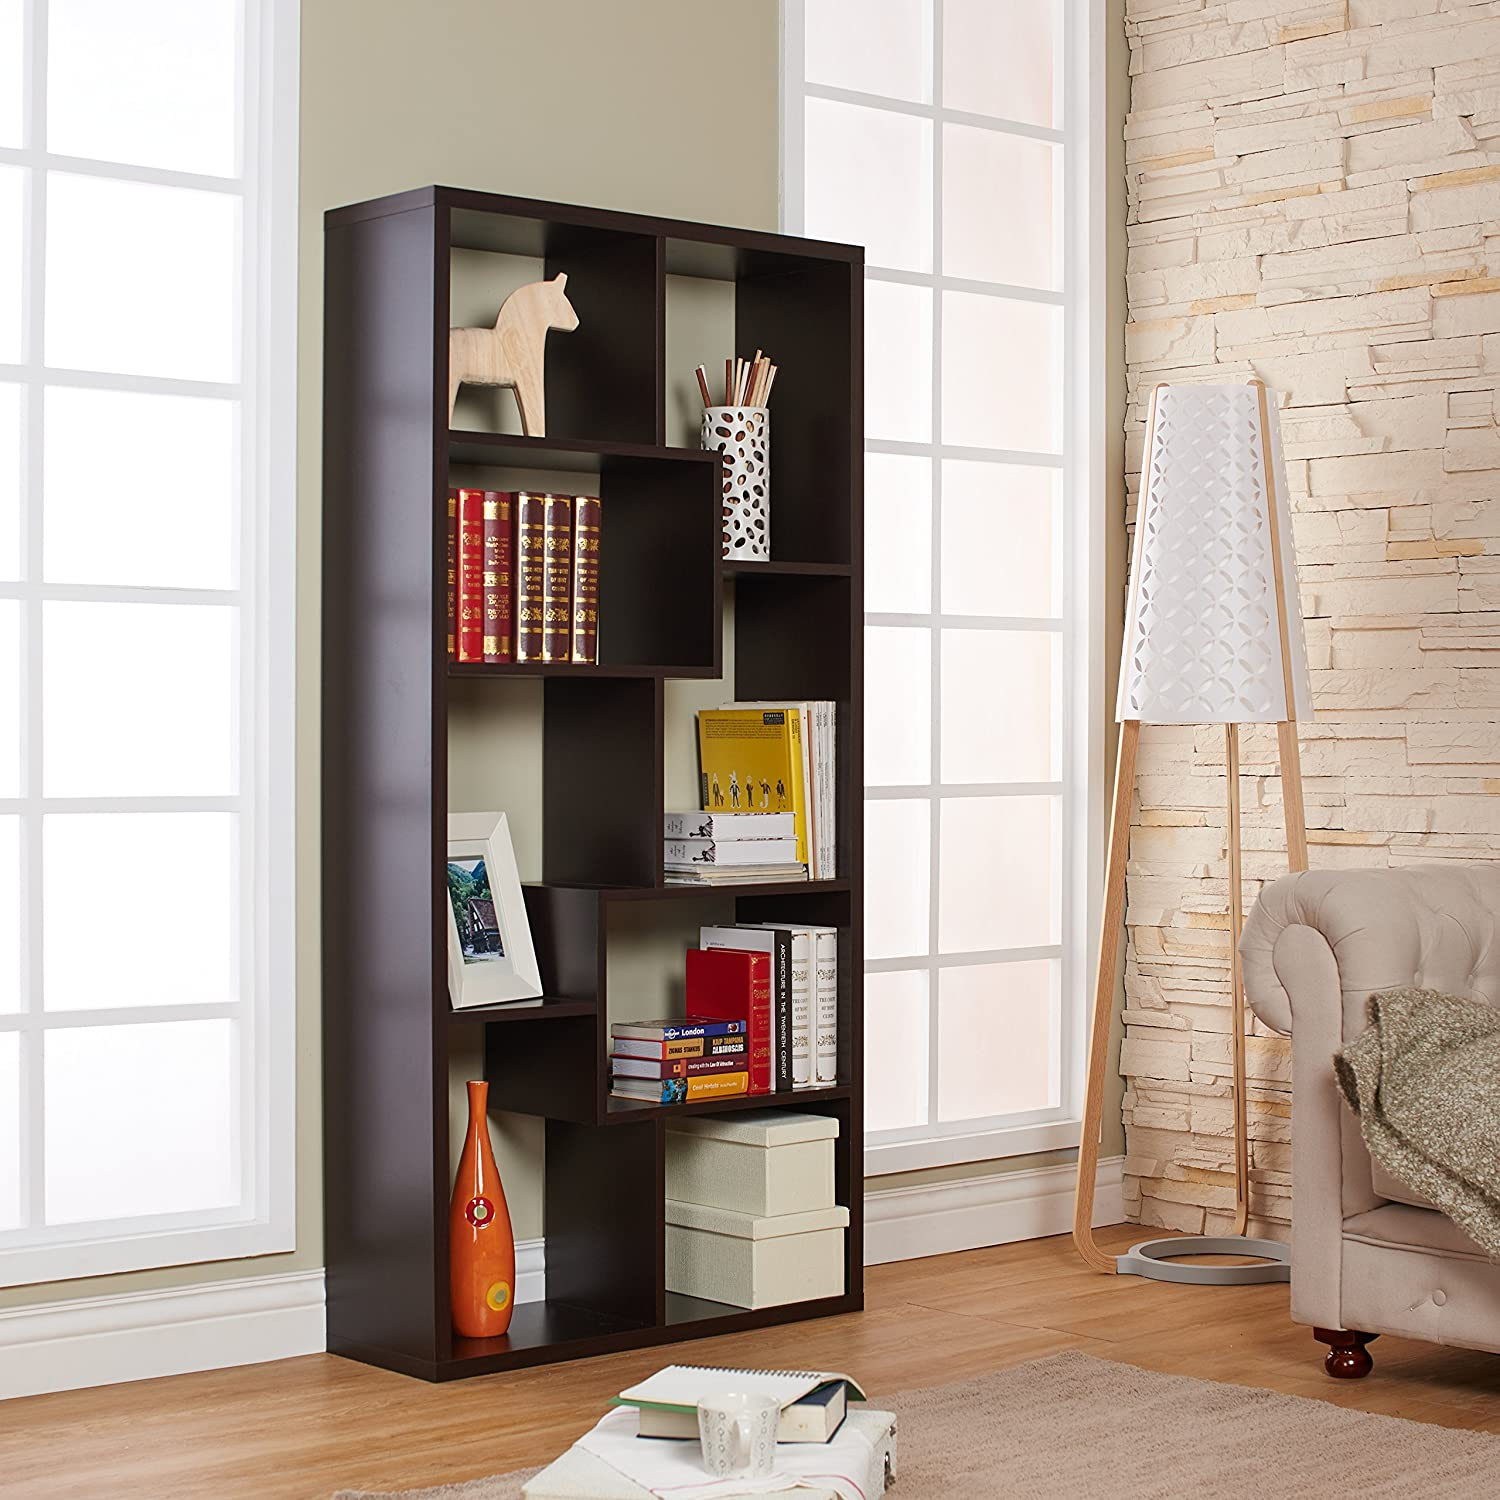 decor contemporary collections ideas distressed green bookshelf backless interior bookcase appealing for furniture french